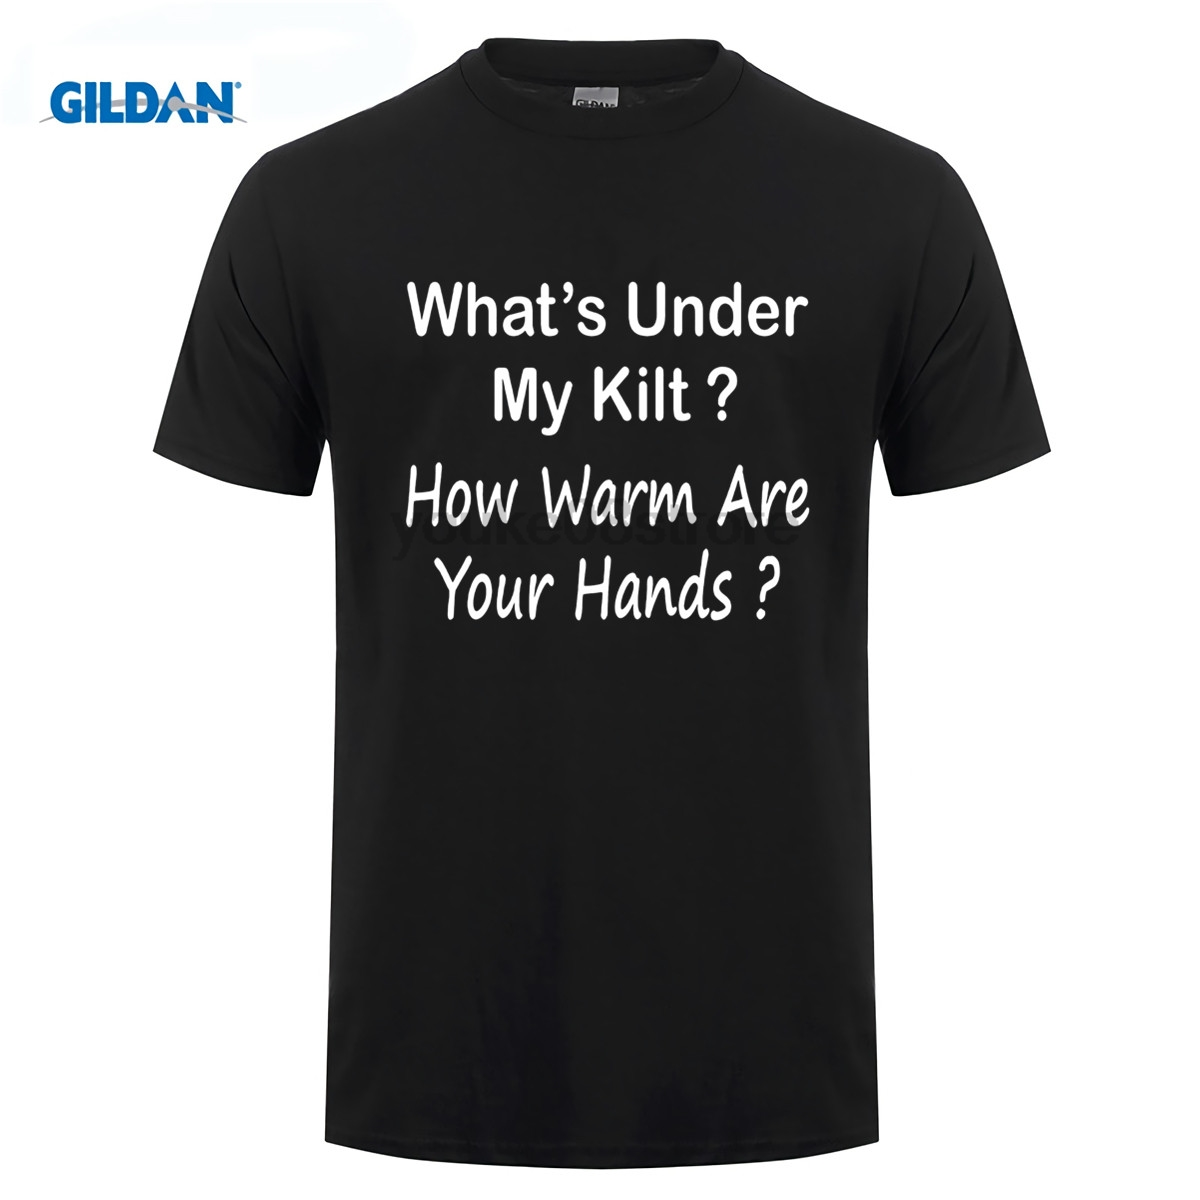 GILDAN 100% cotton o-neck custom printed T shirt Kilt Wearers Funny T Shirt Gift Idea for Scottish Men